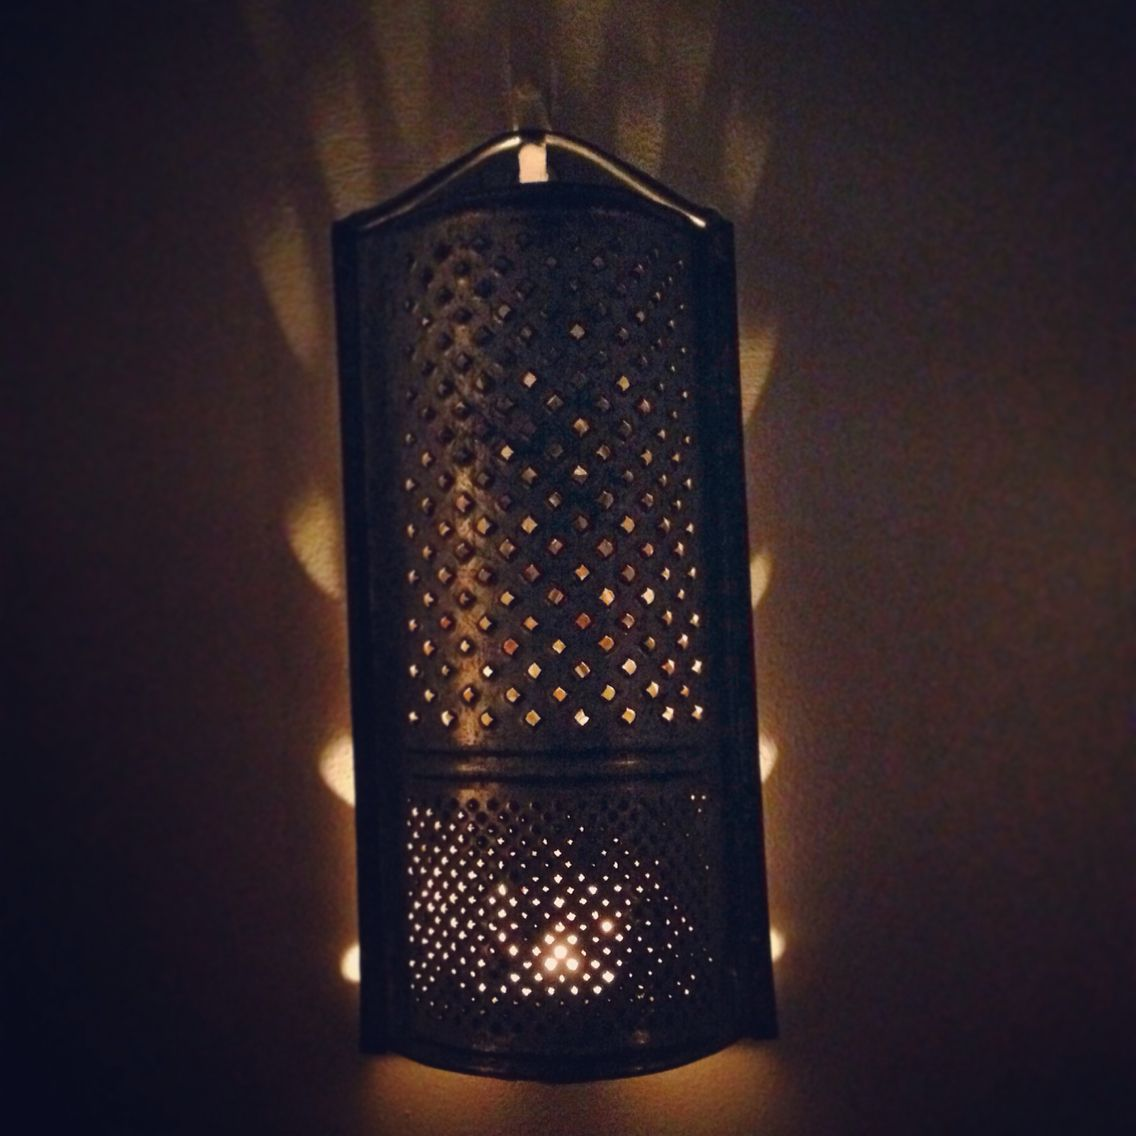 My old grater made into a candle sconce.